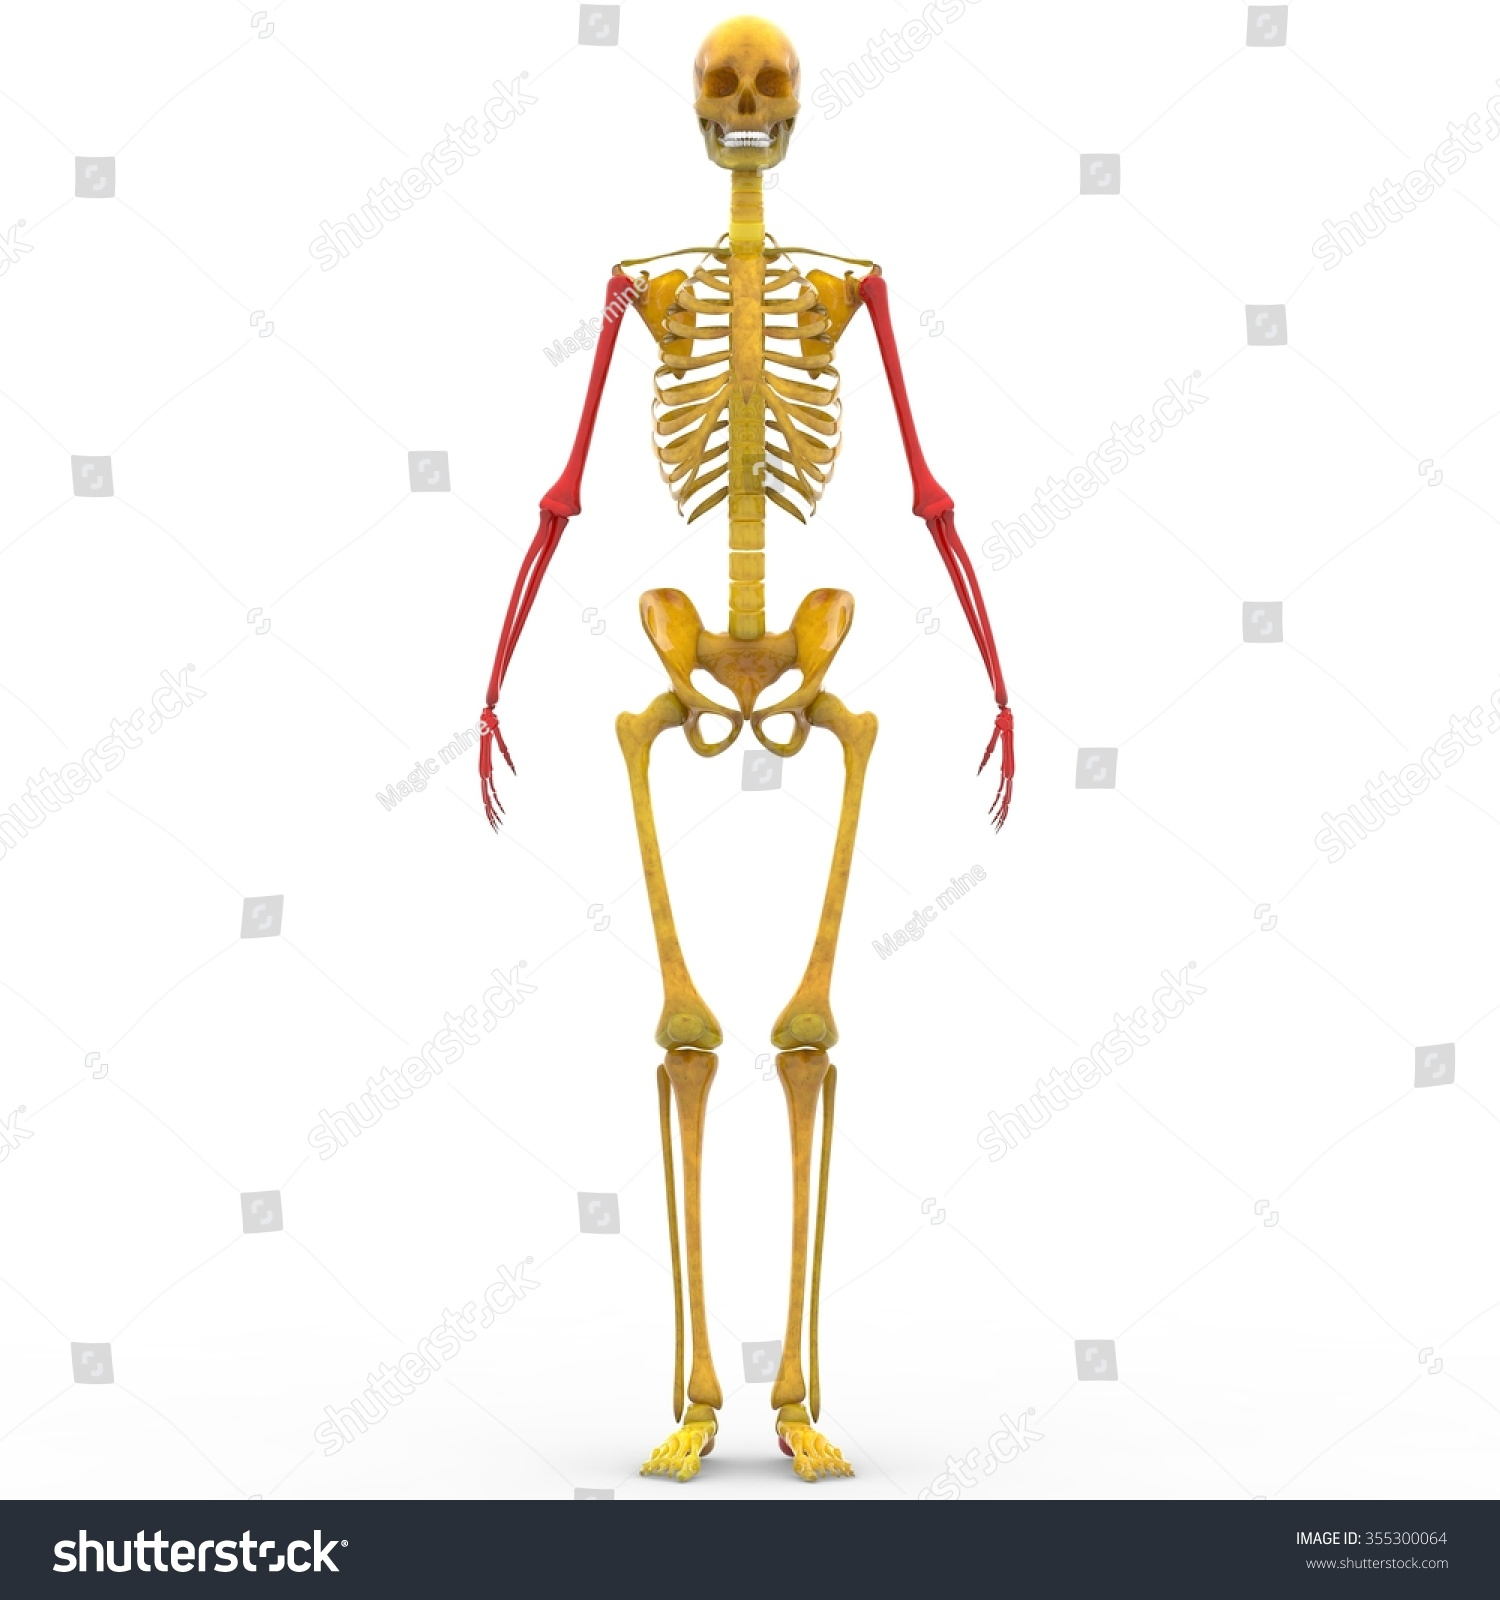 human skeleton humerus radius ulna hand stock illustration, Skeleton